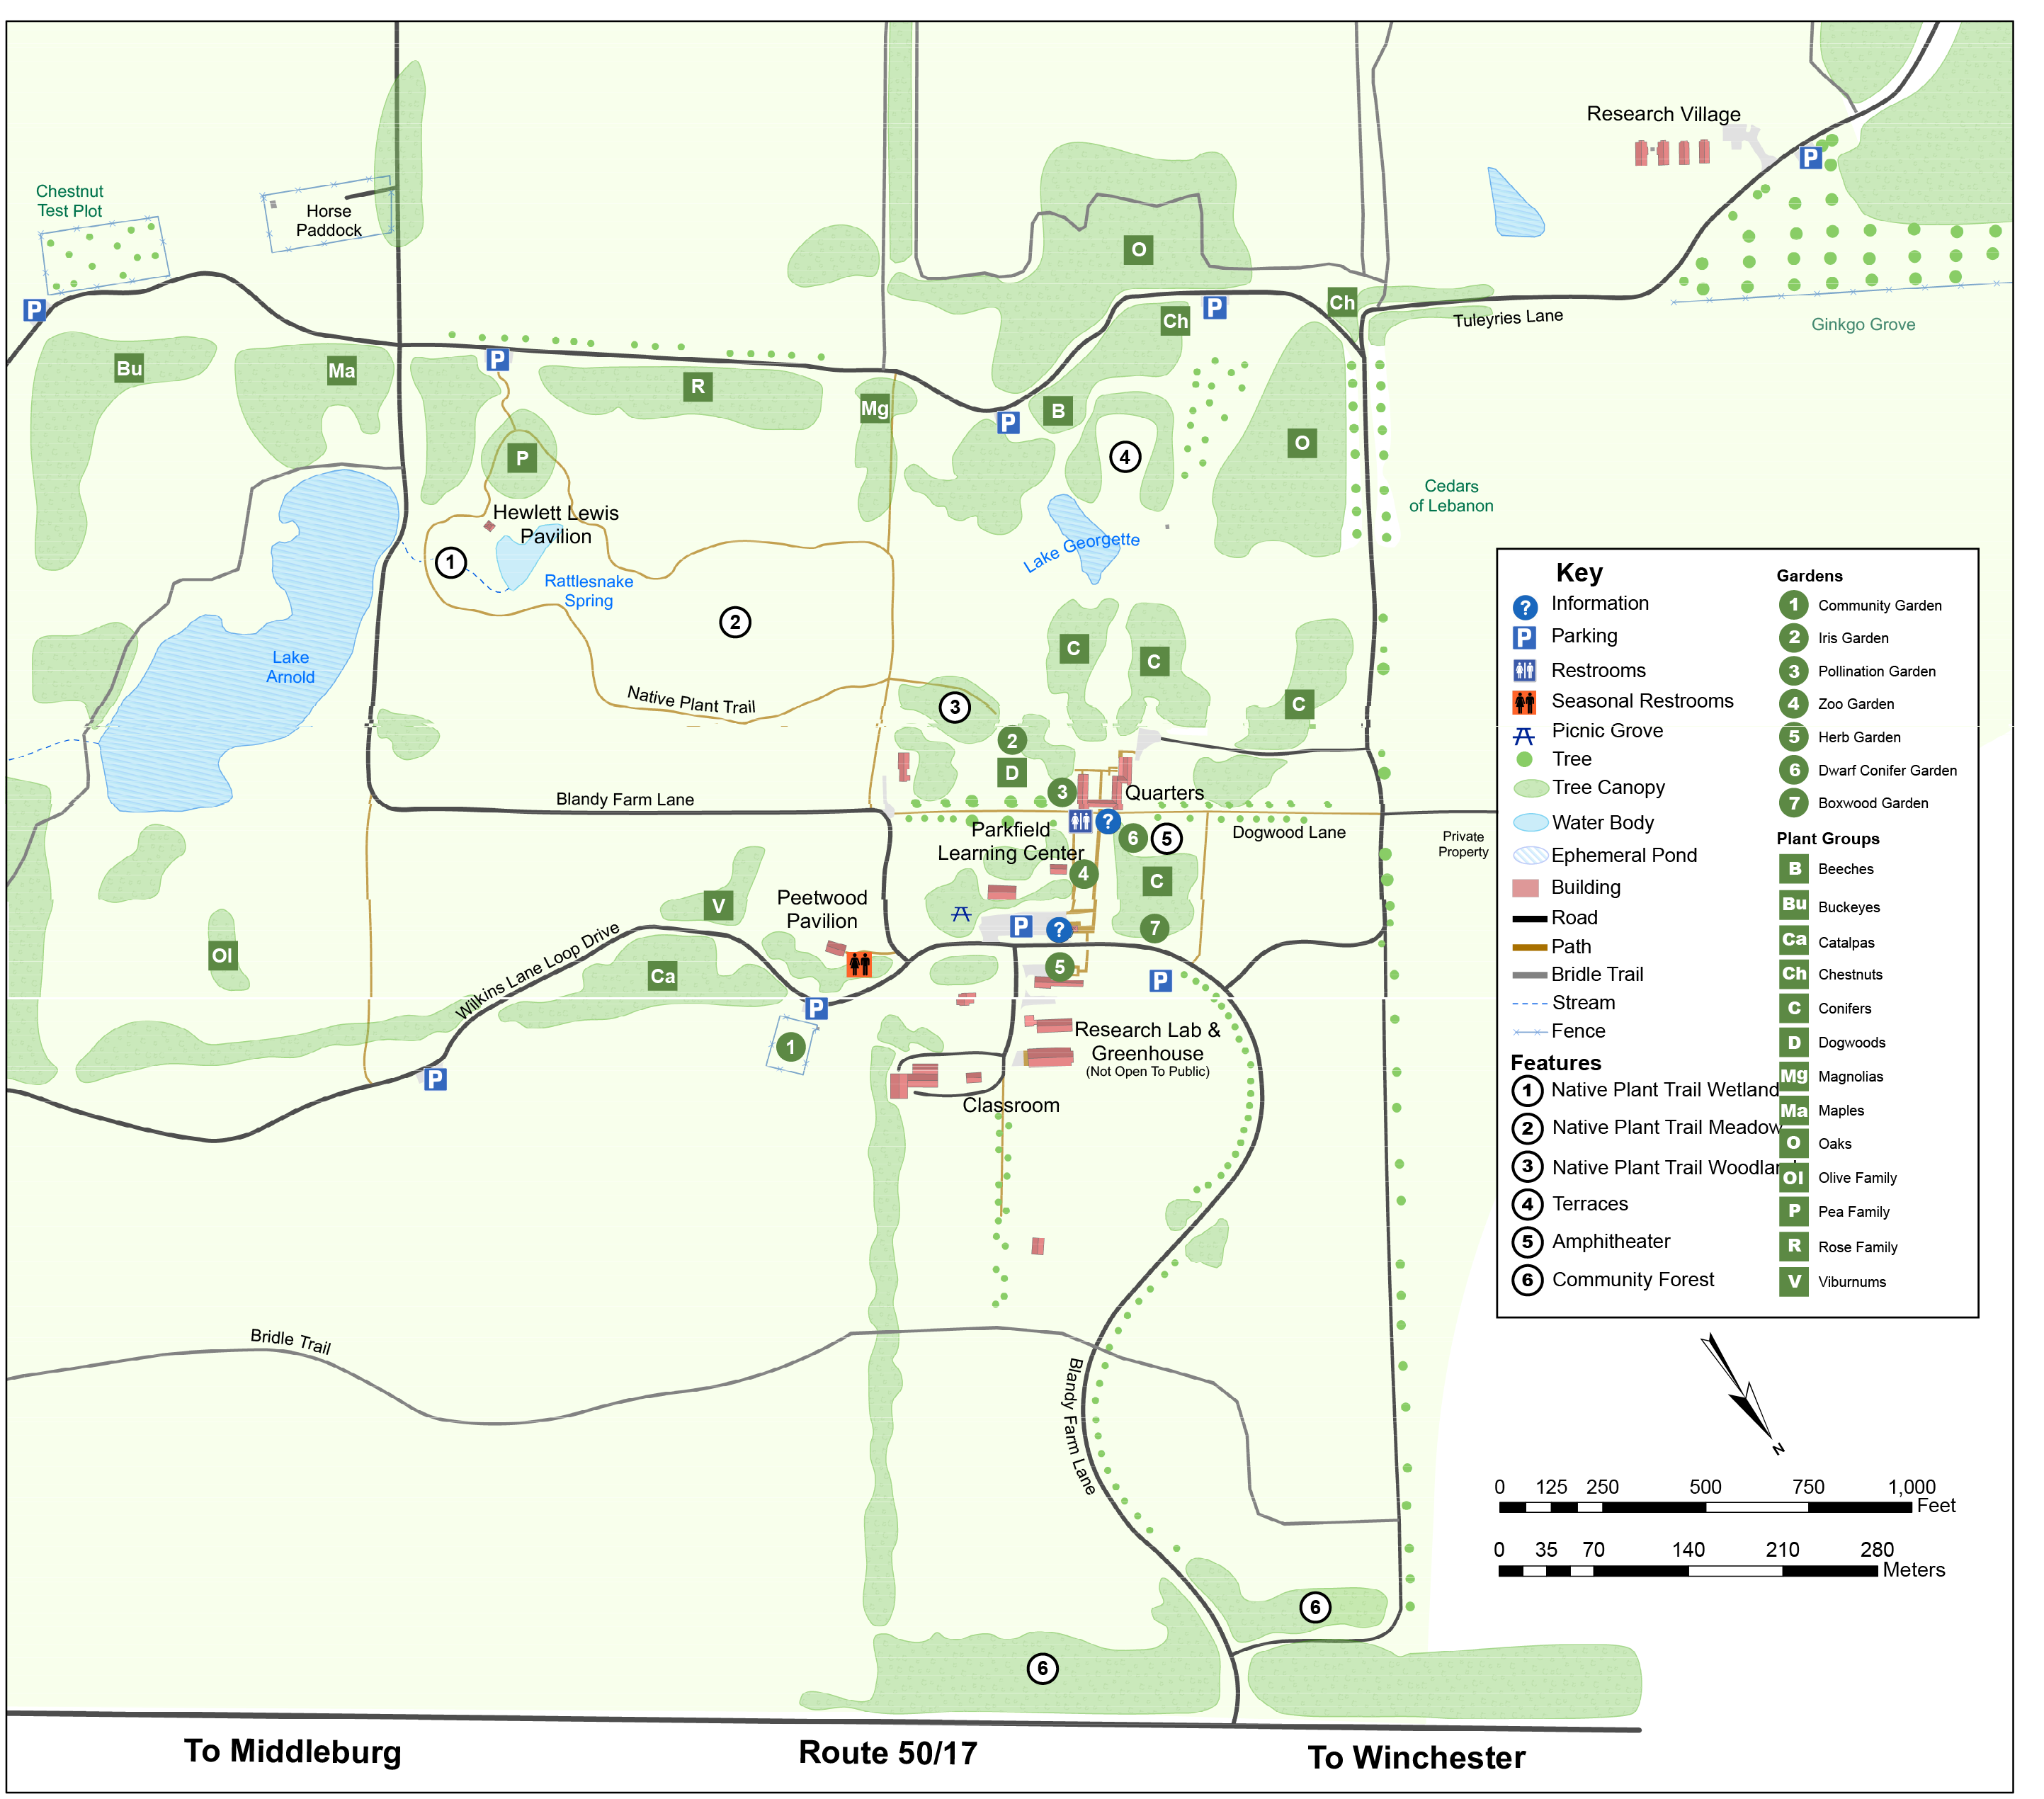 Map of Blandy property highlighting areas of interest